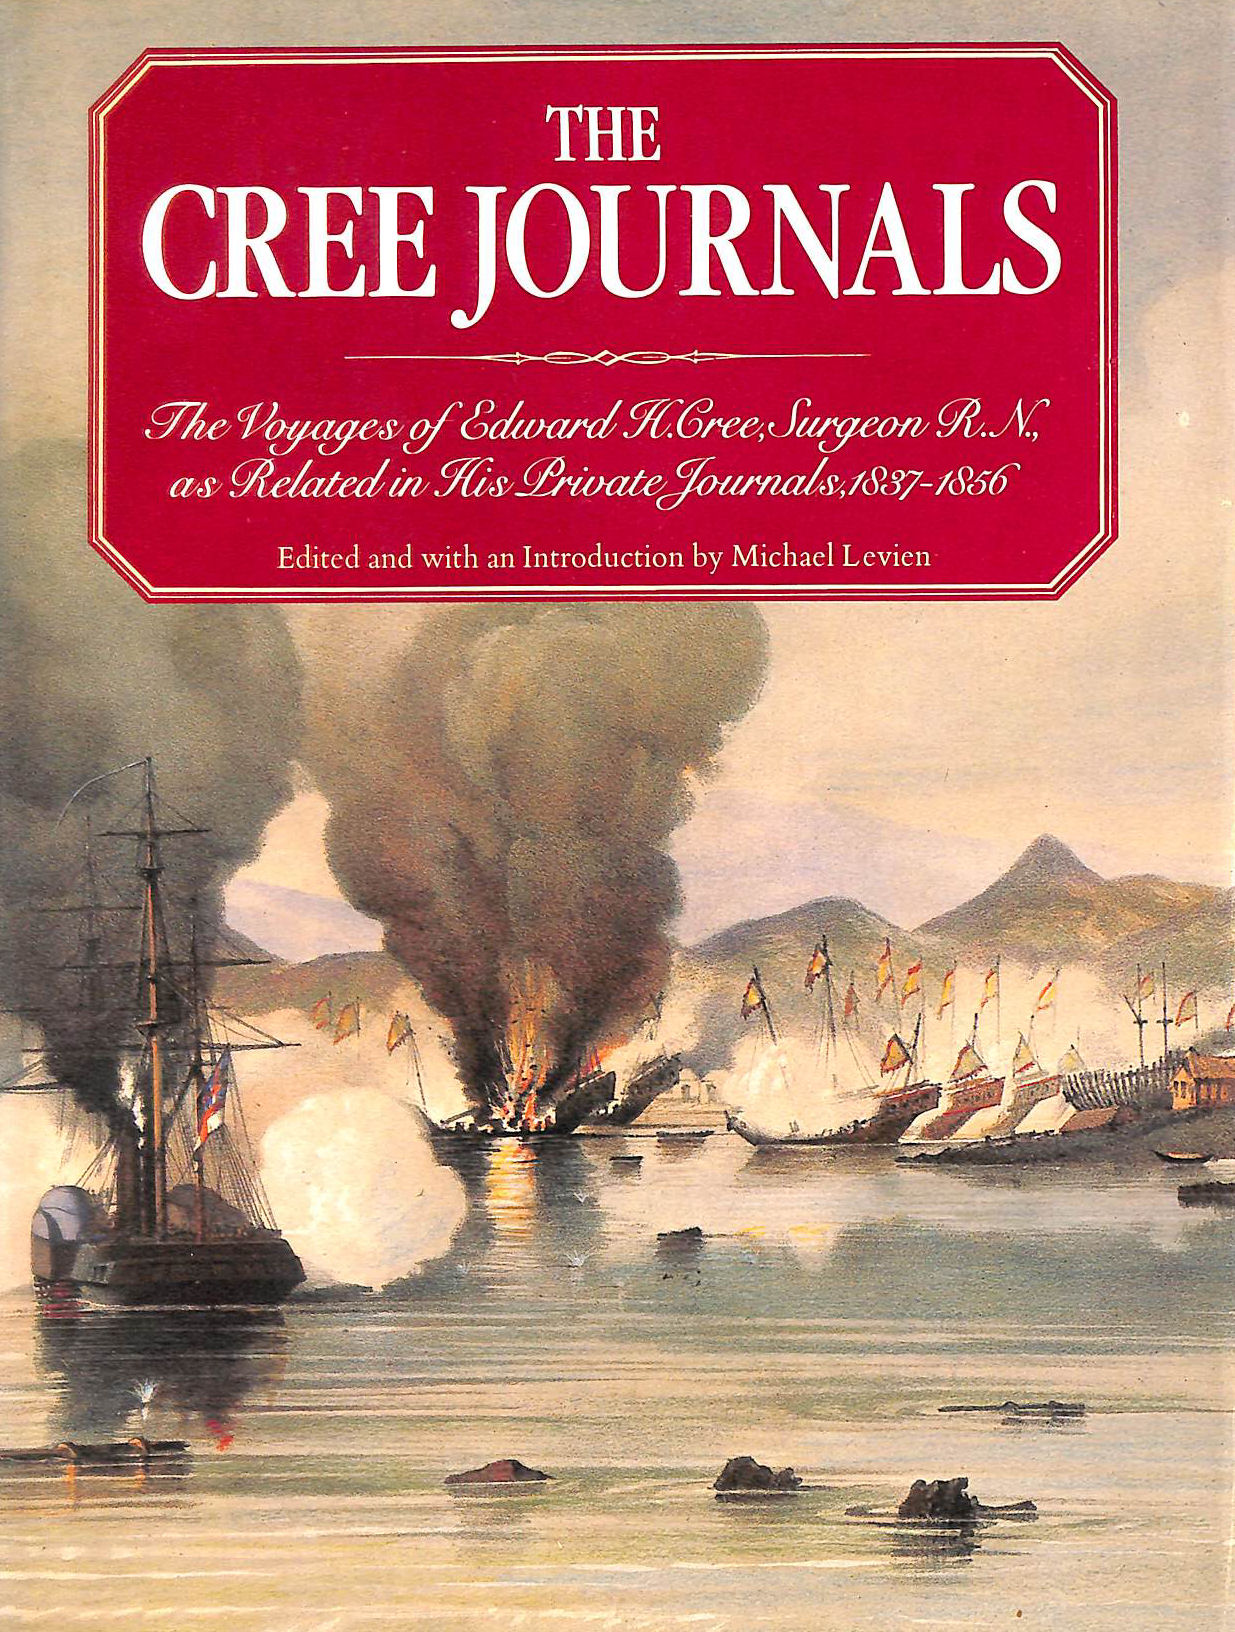 Image for Cree Journals: Voyages of Edward H.Cree, Surgeon R.N., as Related in His Private Journals, 1837-56